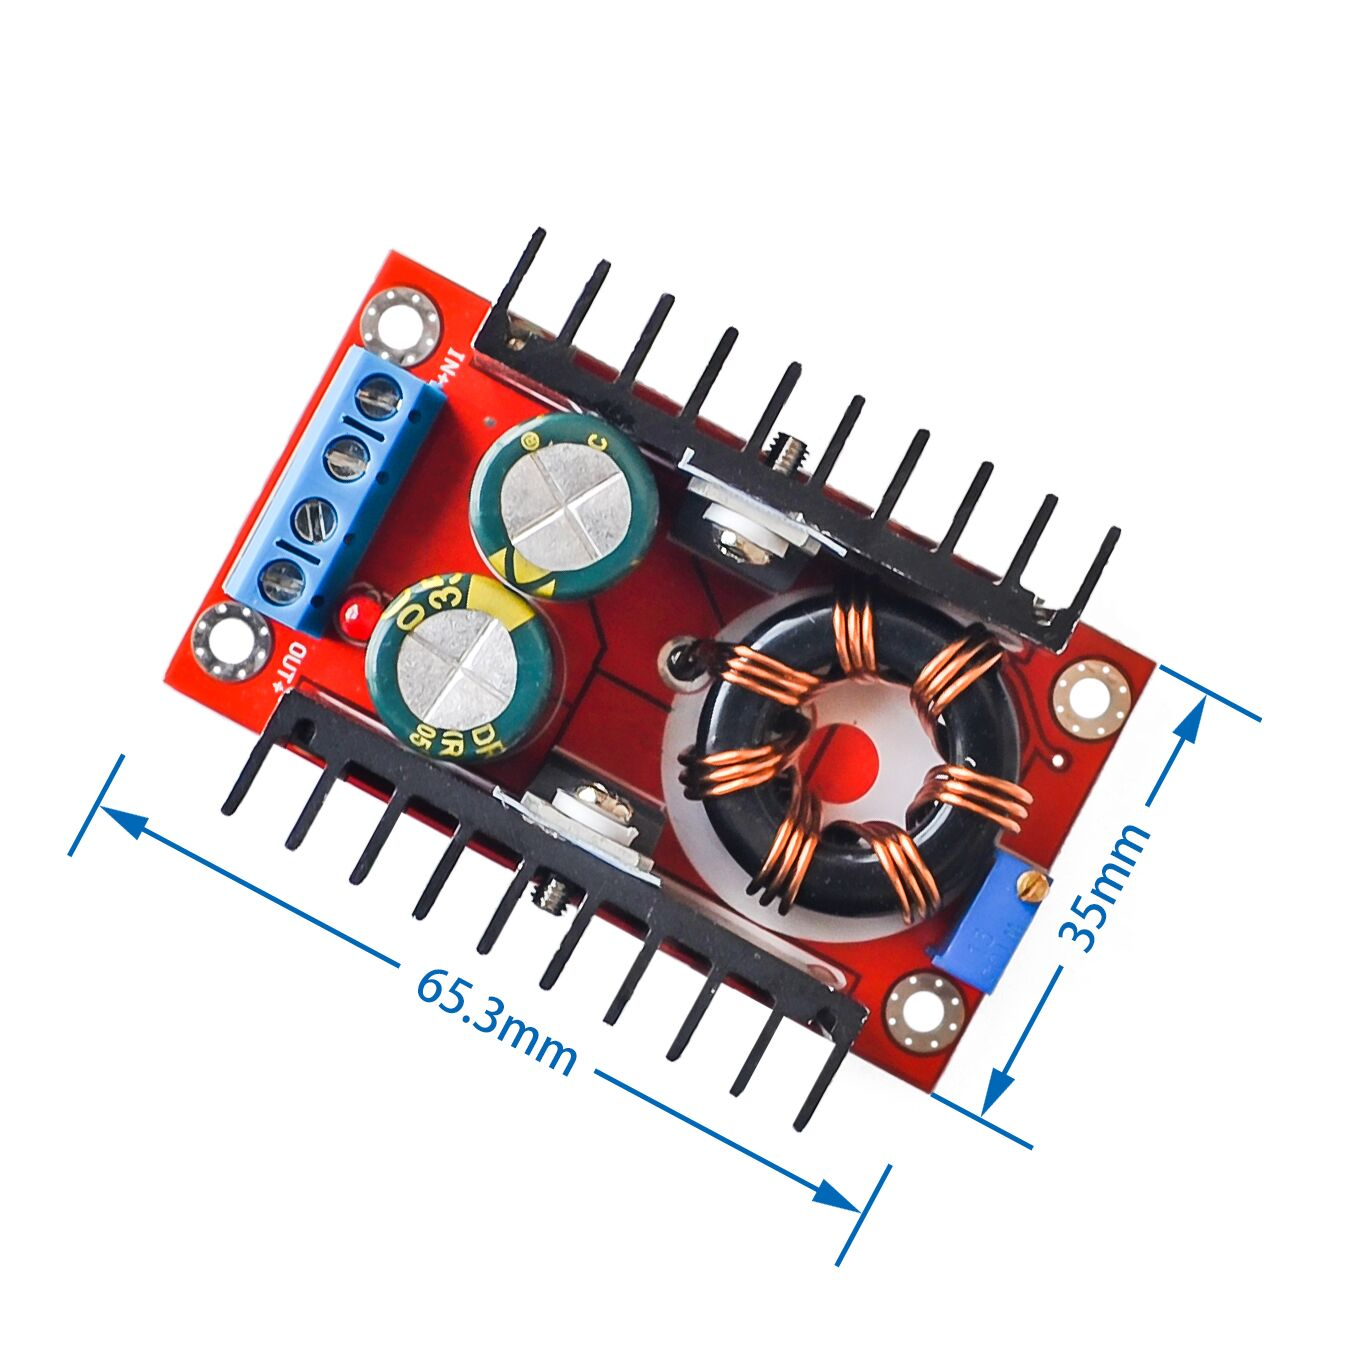 1pcs <font><b>150W</b></font> Boost Converter <font><b>DC</b></font>-<font><b>DC</b></font> 10-32V to 12-35V <font><b>Step</b></font> <font><b>Up</b></font> Voltage Charger Module Dropshipping image